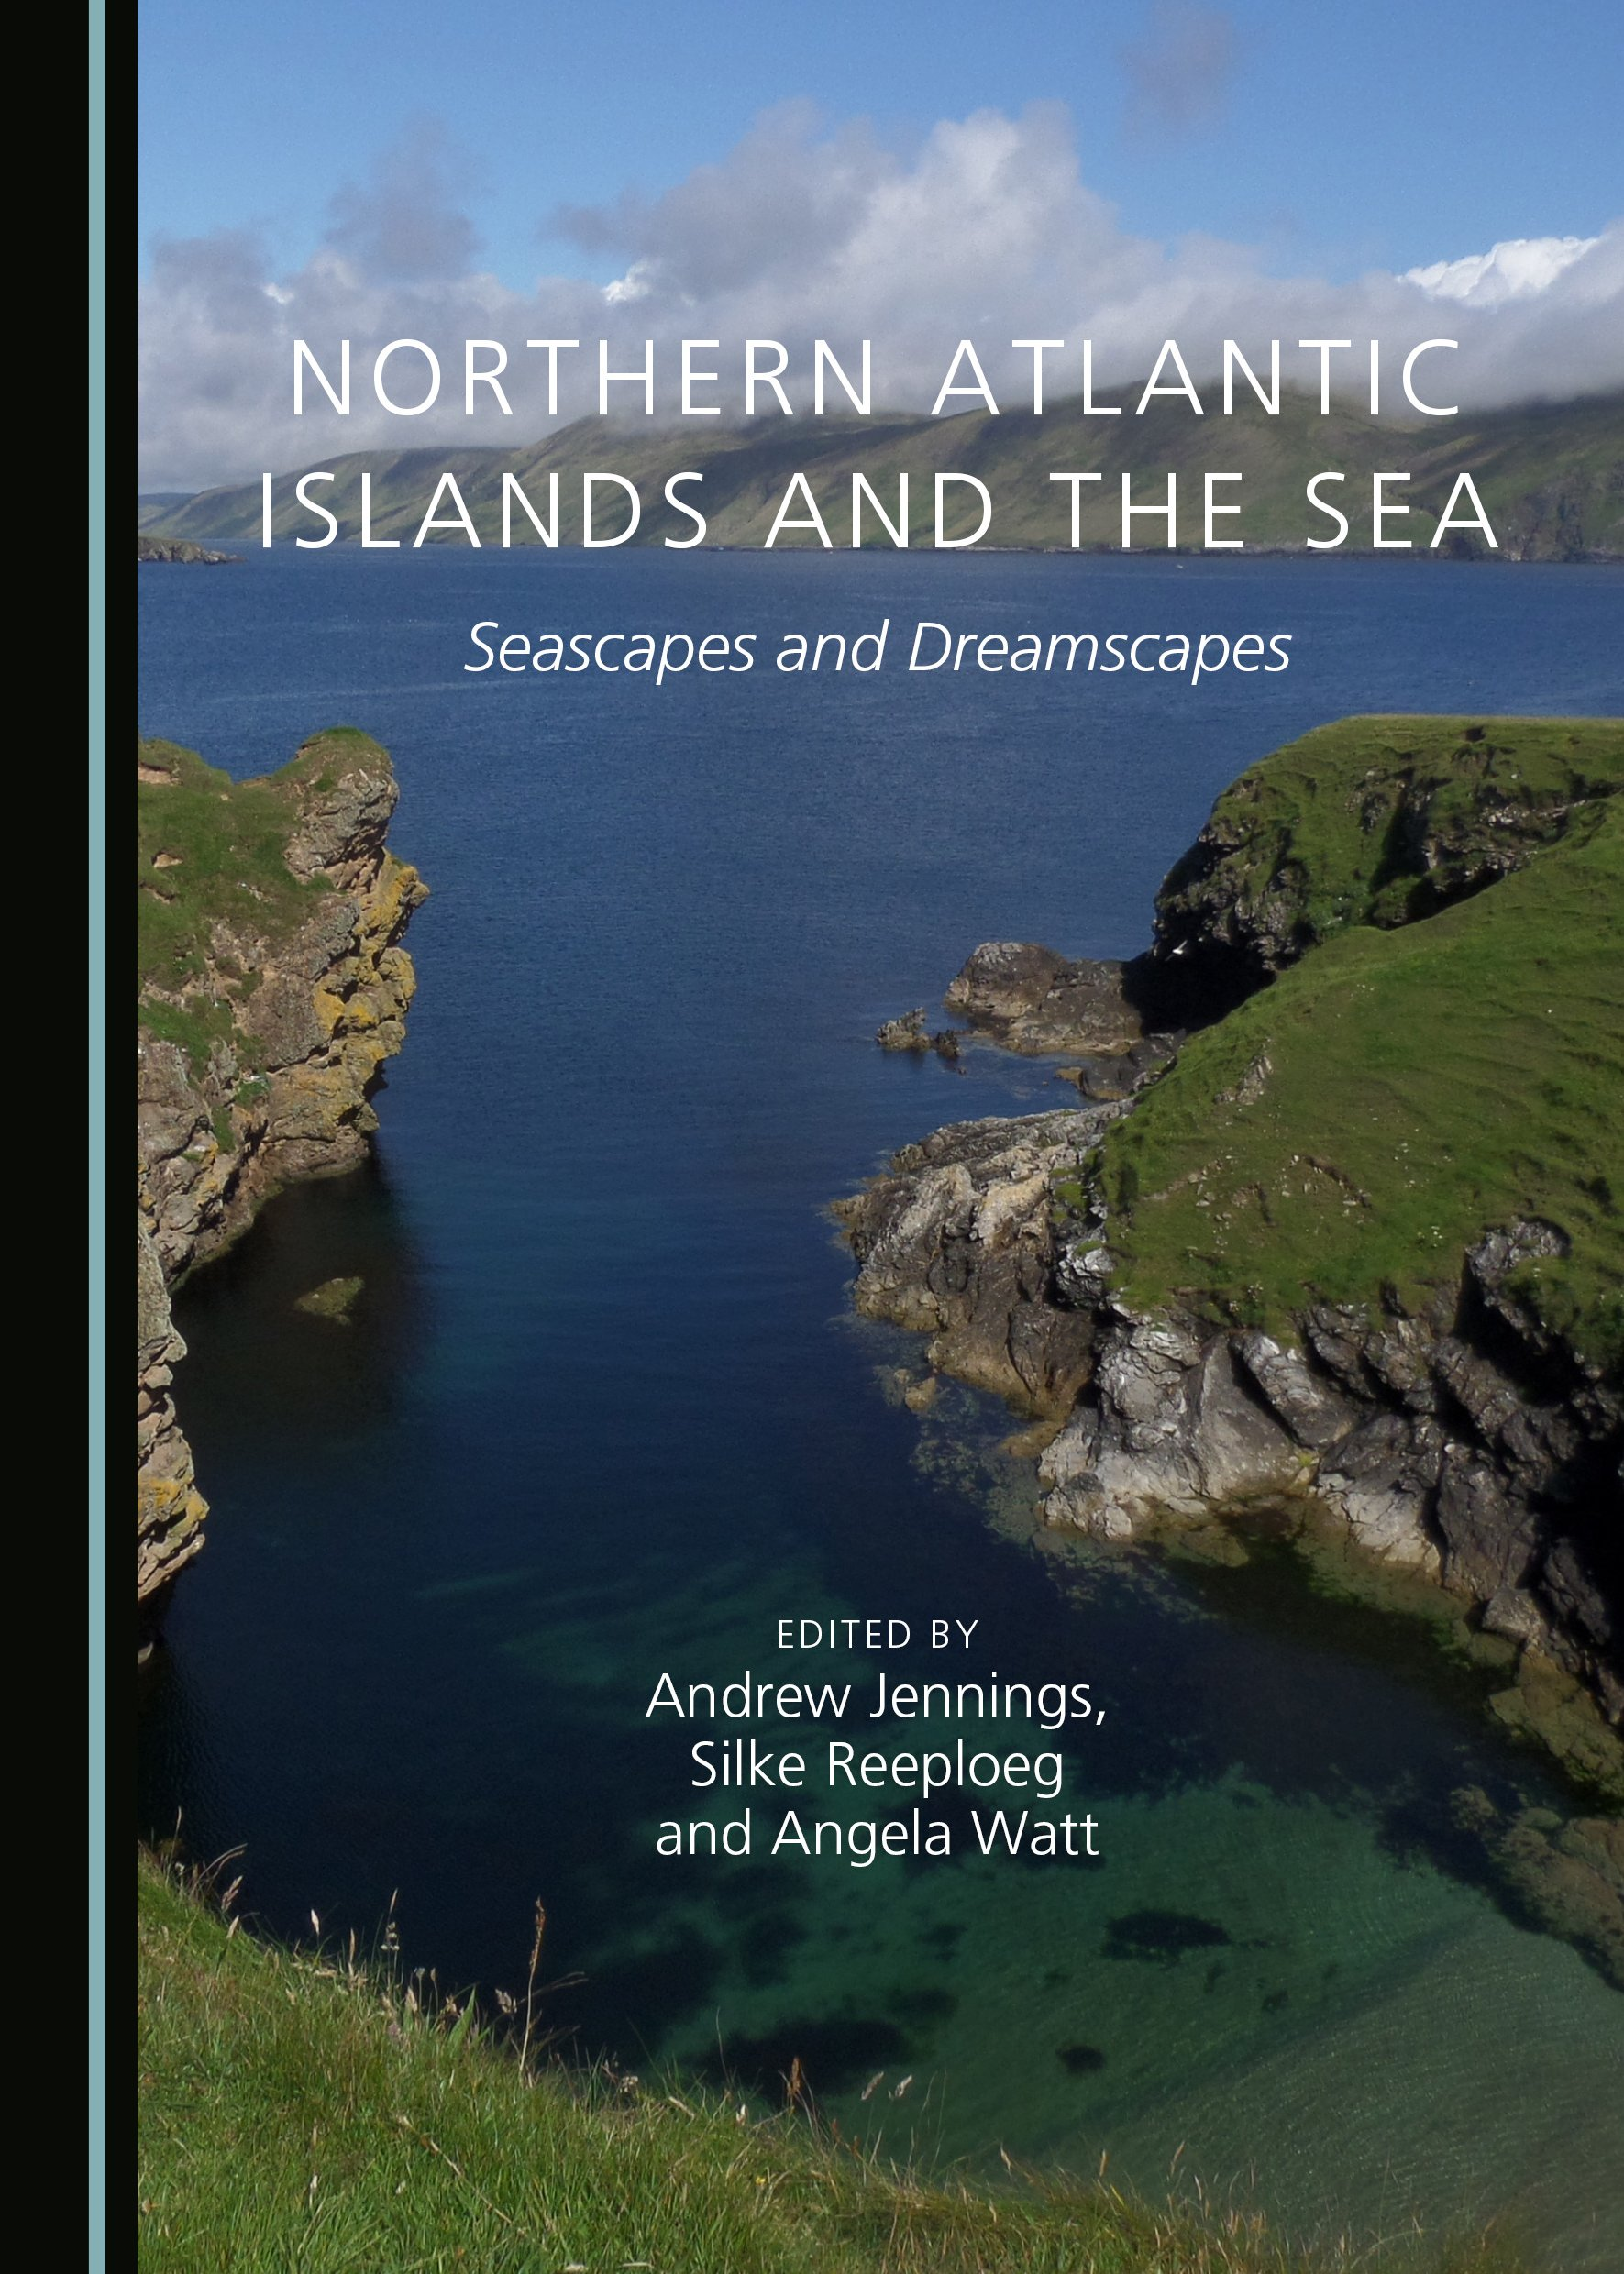 Northern Atlantic Islands and the Sea: Seascapes and Dreamscapes